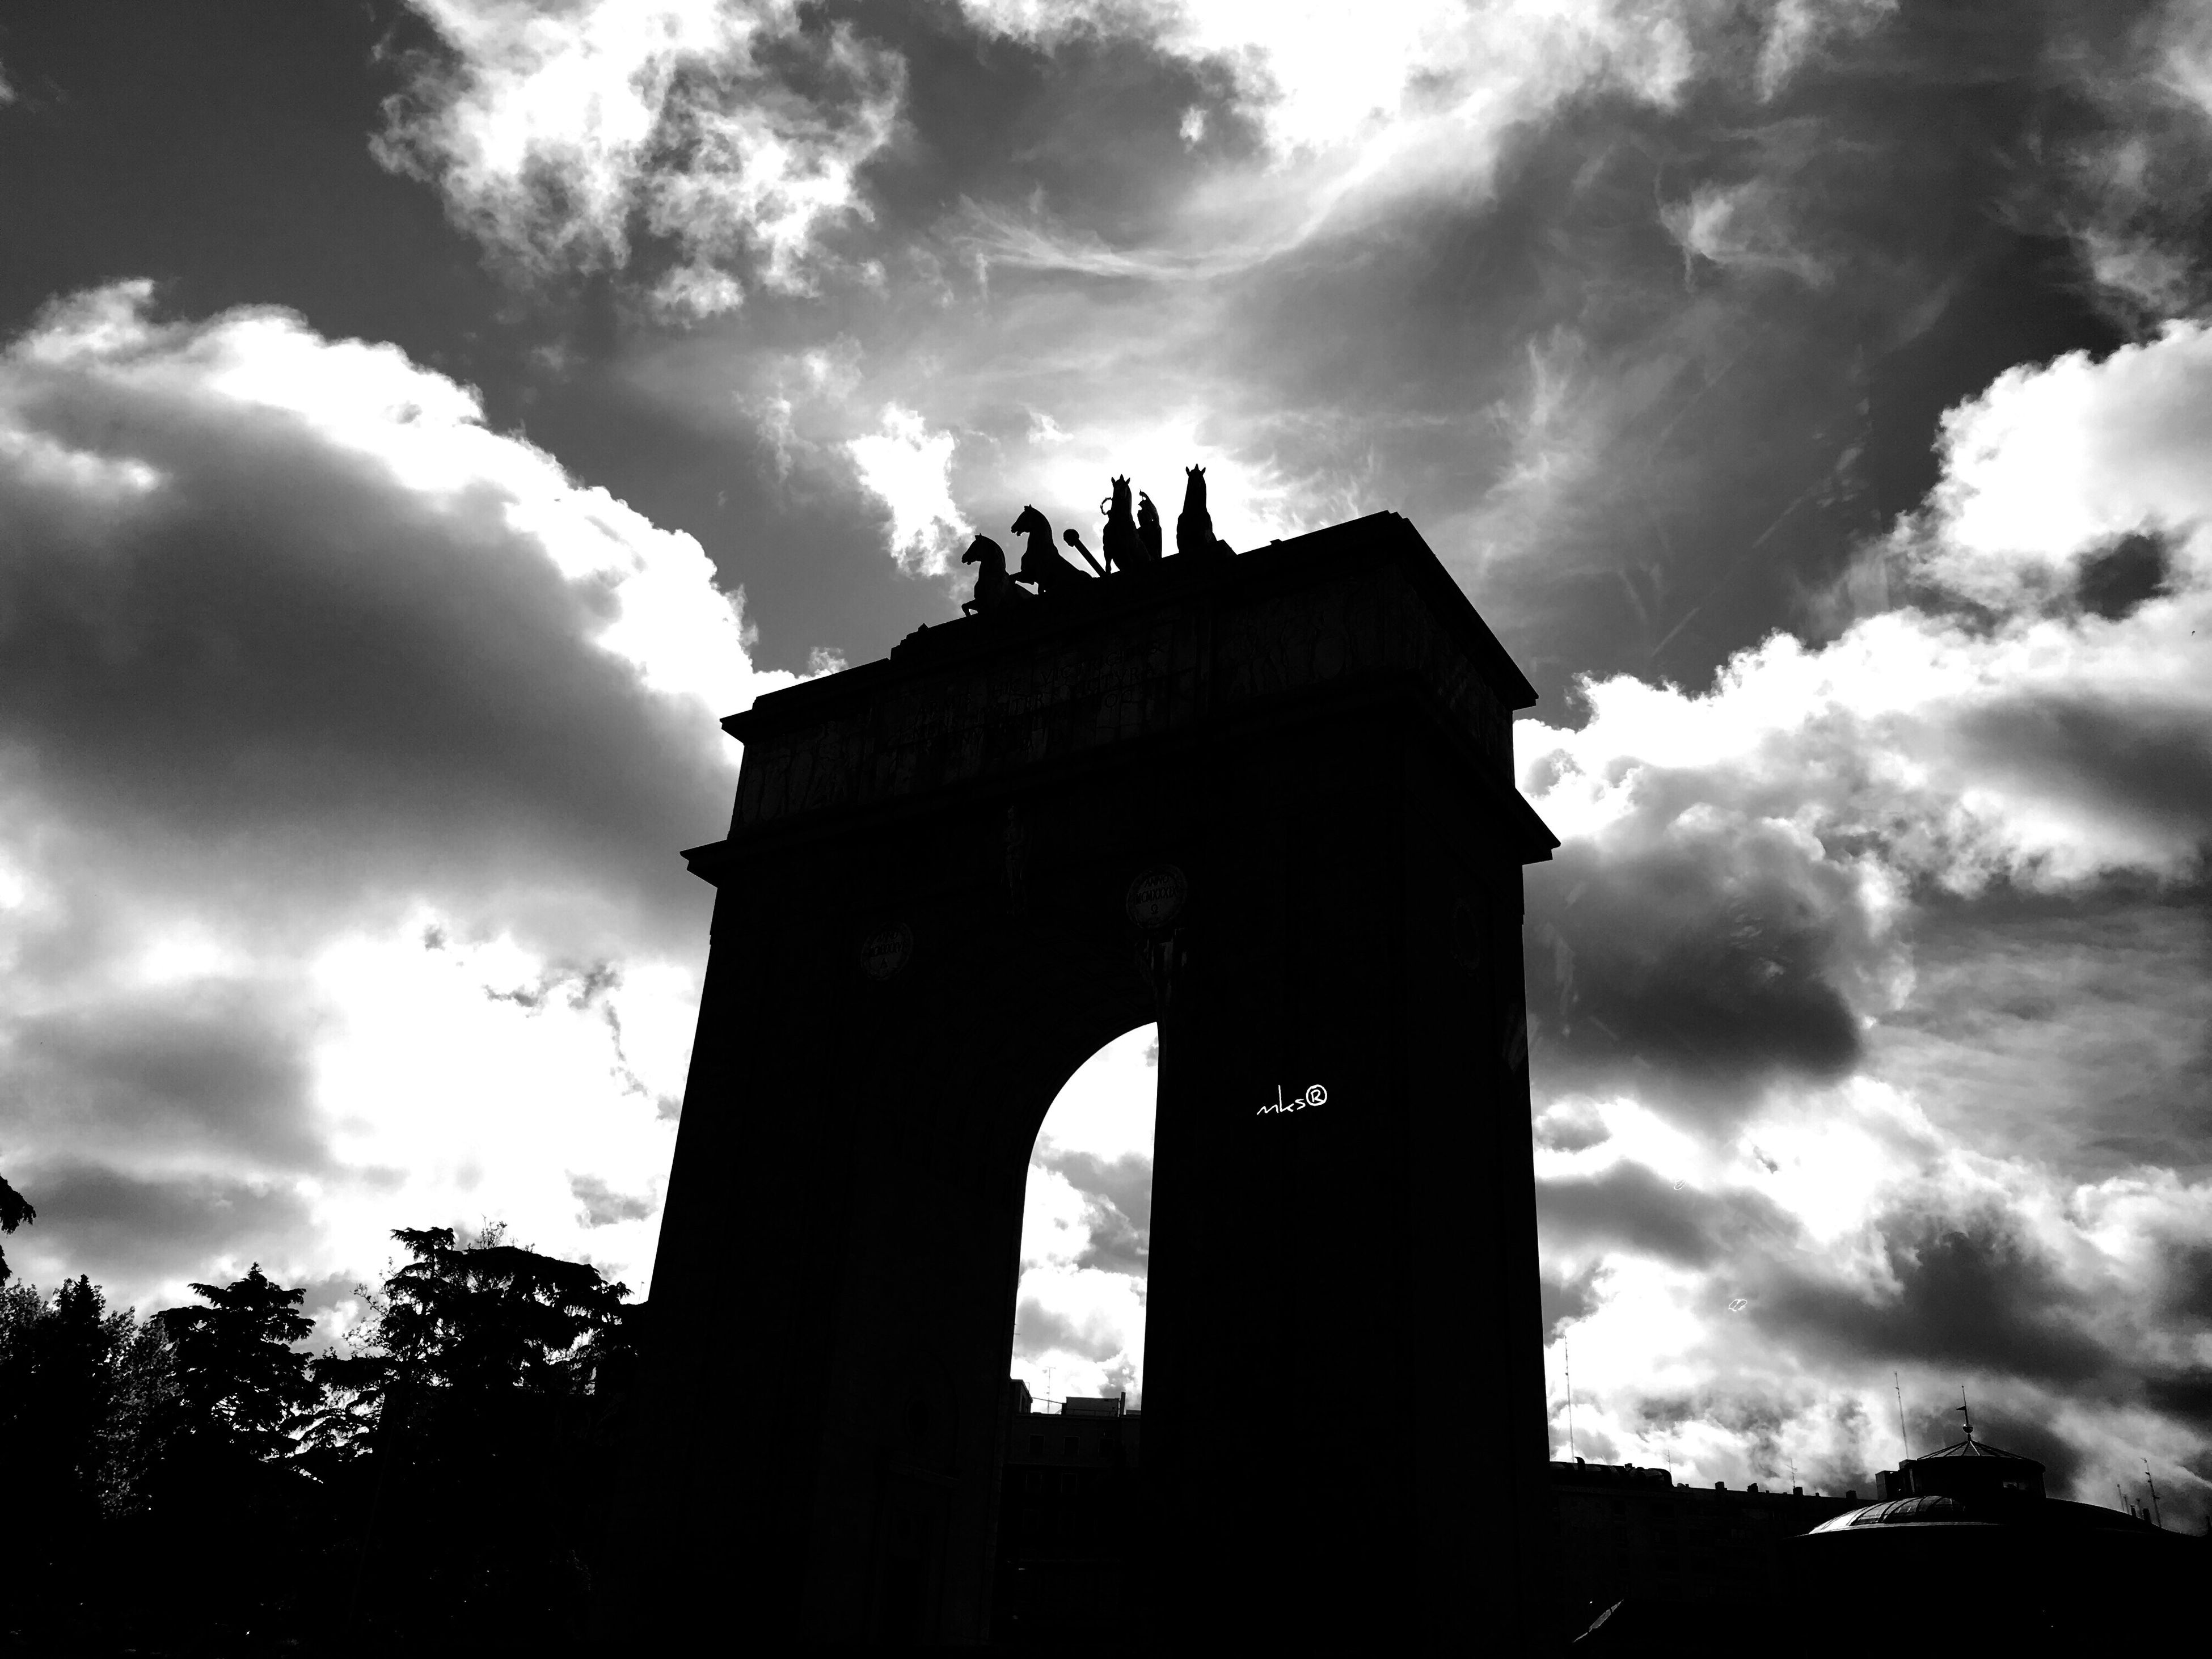 low angle view, sky, architecture, built structure, cloud - sky, silhouette, building exterior, history, cloud, old, cloudy, outdoors, the past, religion, arch, tree, no people, architectural column, dusk